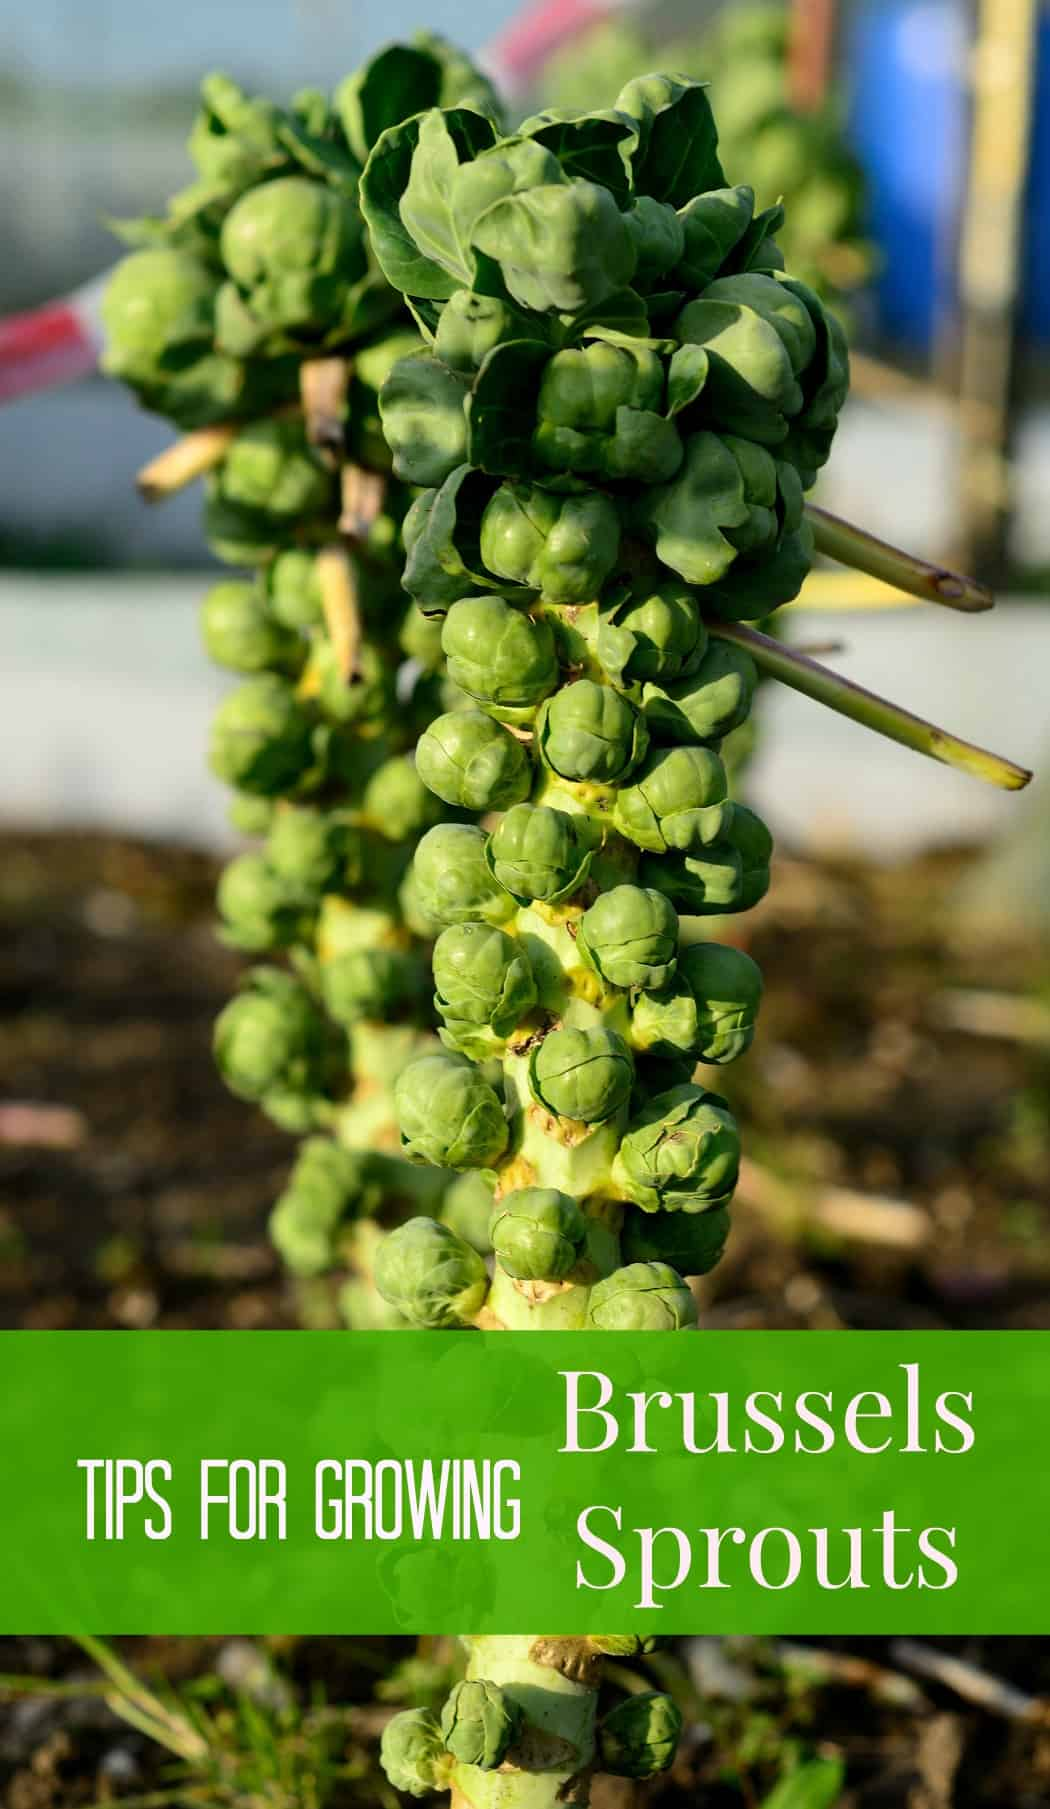 Brussel sprouts (Brassica oleracea) growing naturally.